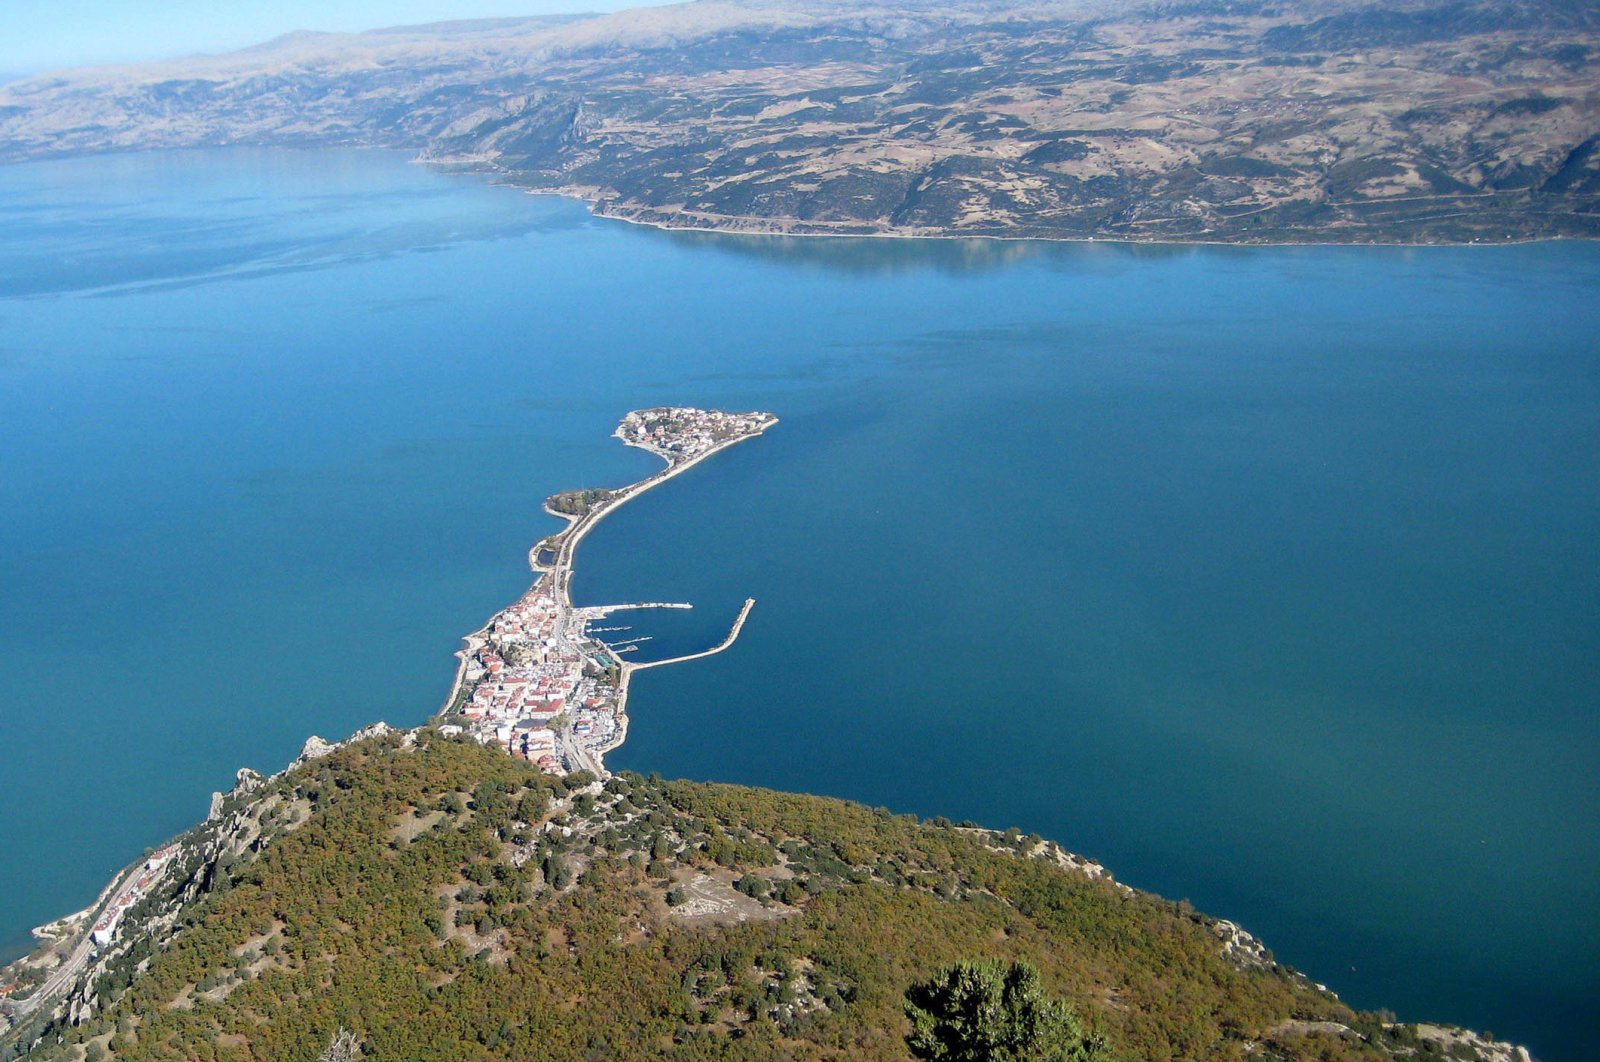 The partnership is due to invest around $1.5 billion in the dam project at Isparta's Eğirdir Lake, pictured in this undated photo. (DHA Photo)